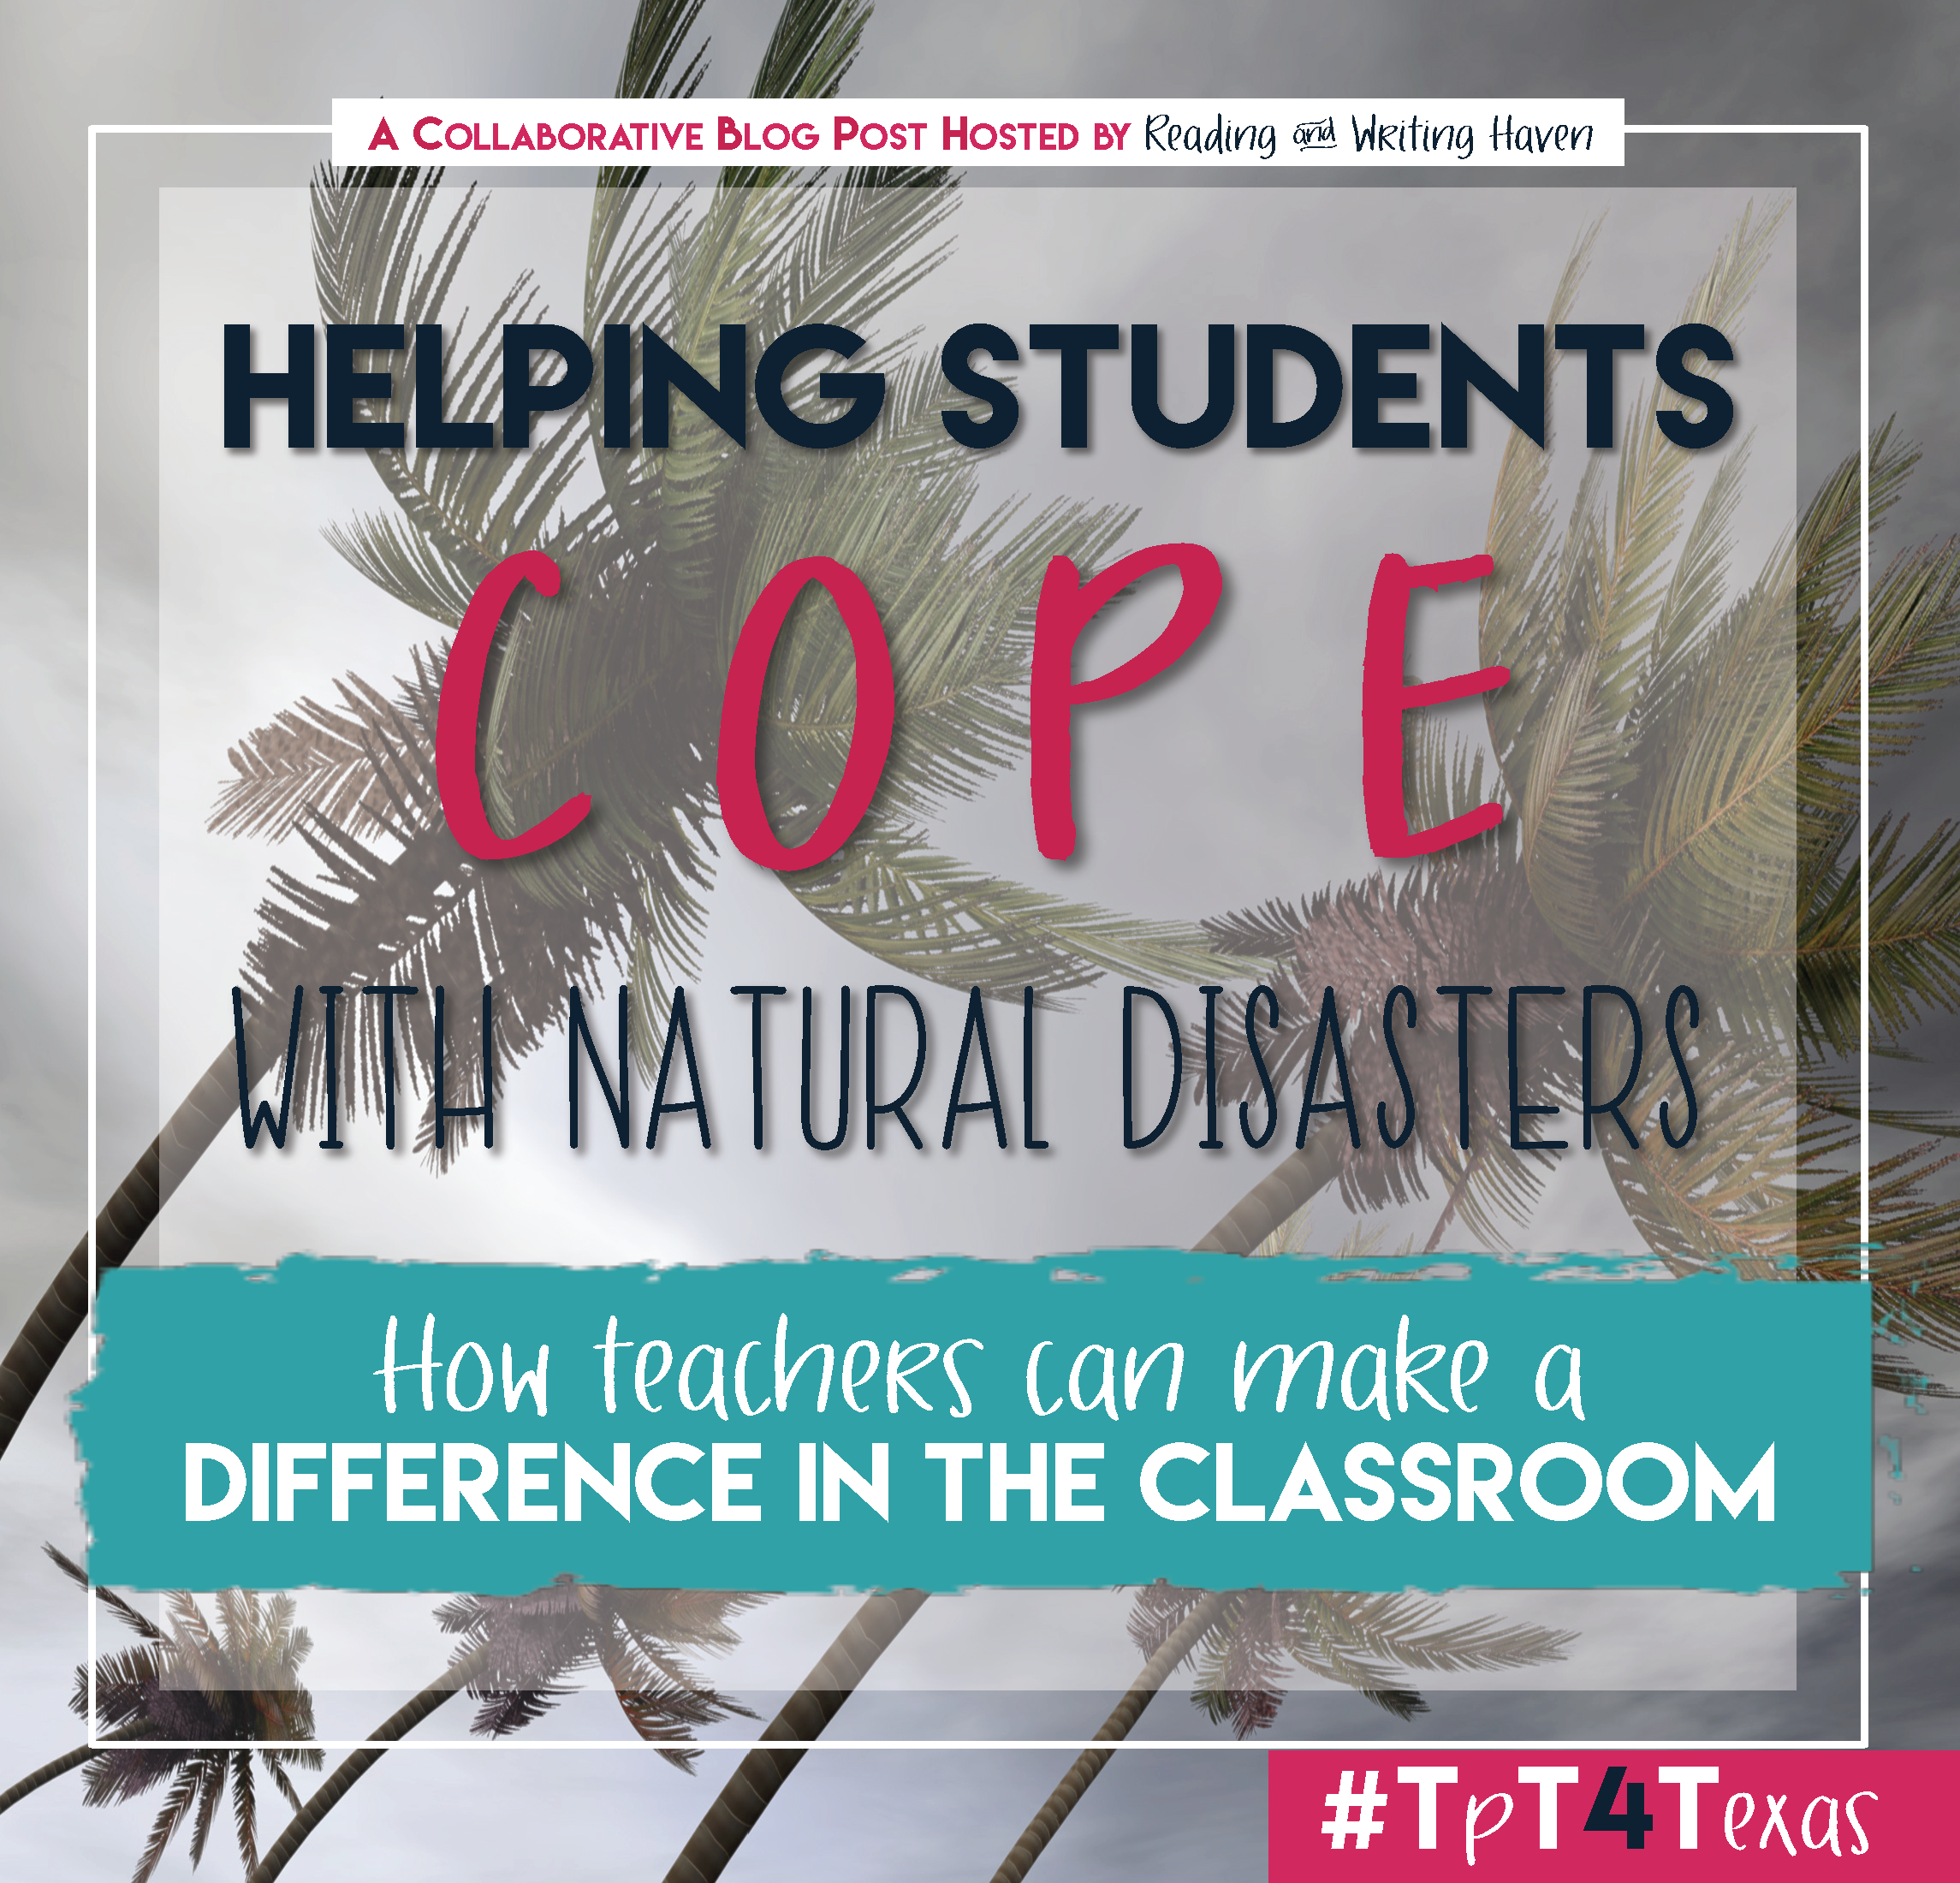 5 Ways Teachers Can Help Students Cope With Natural Disasters